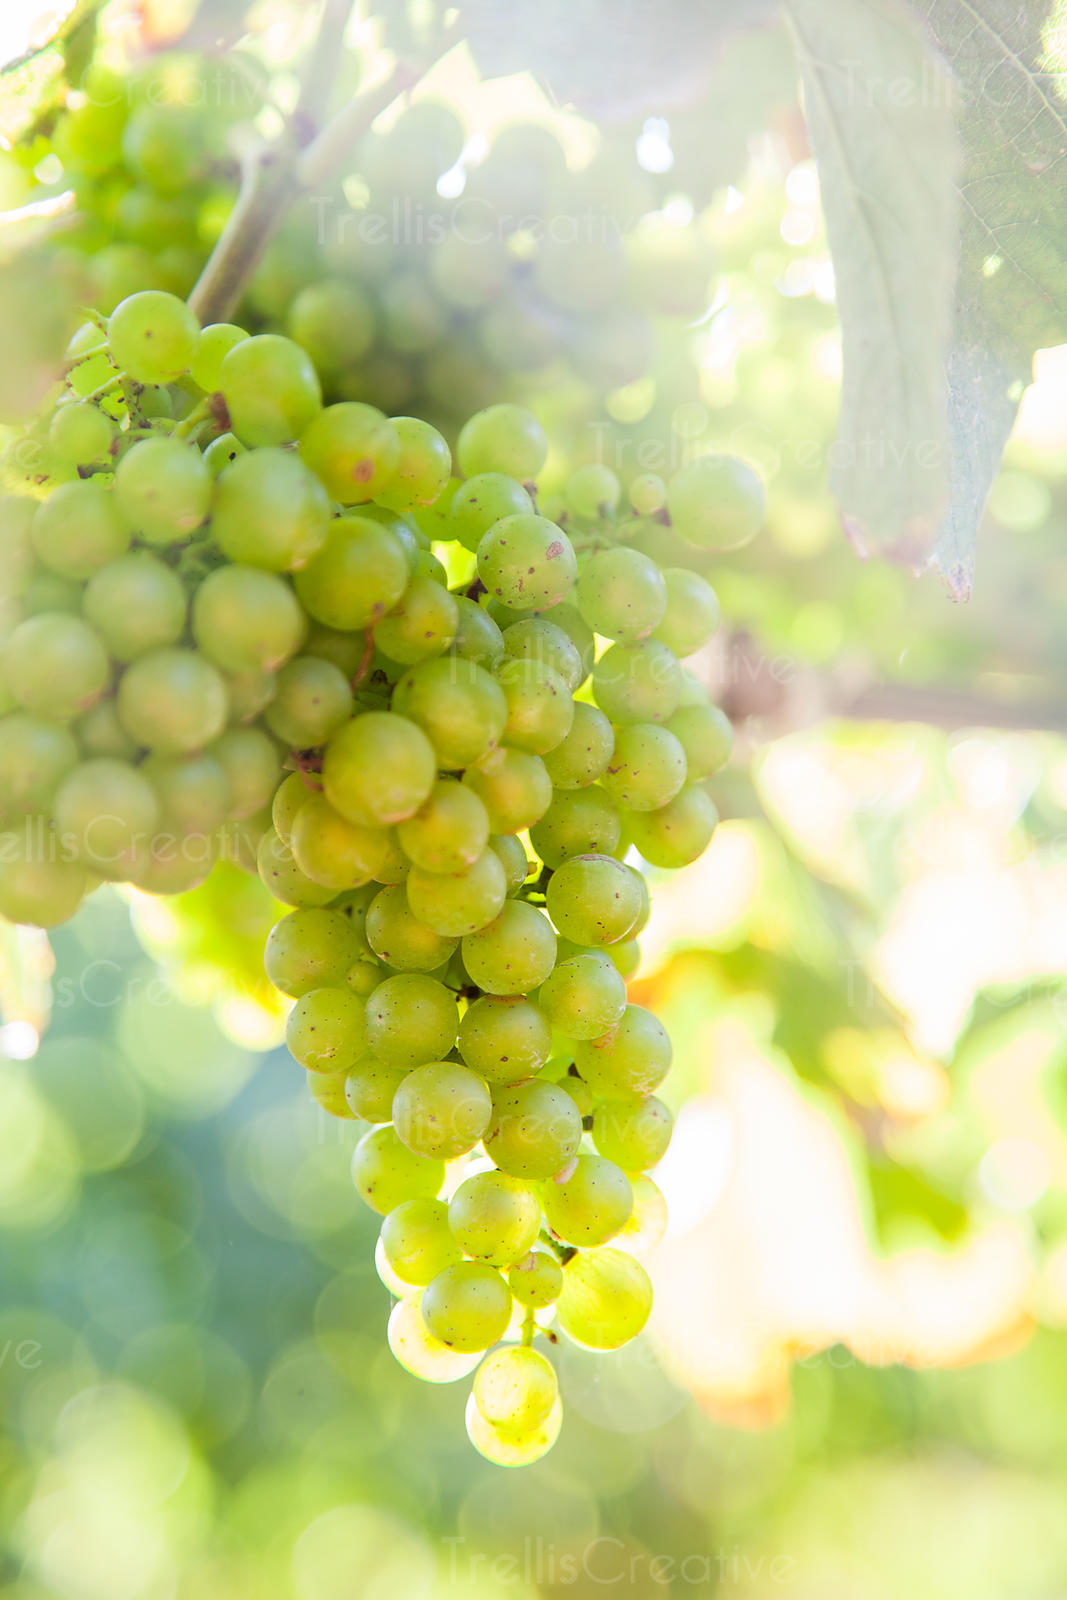 Clusters of chardonnay grapes surrounded by grape vines.